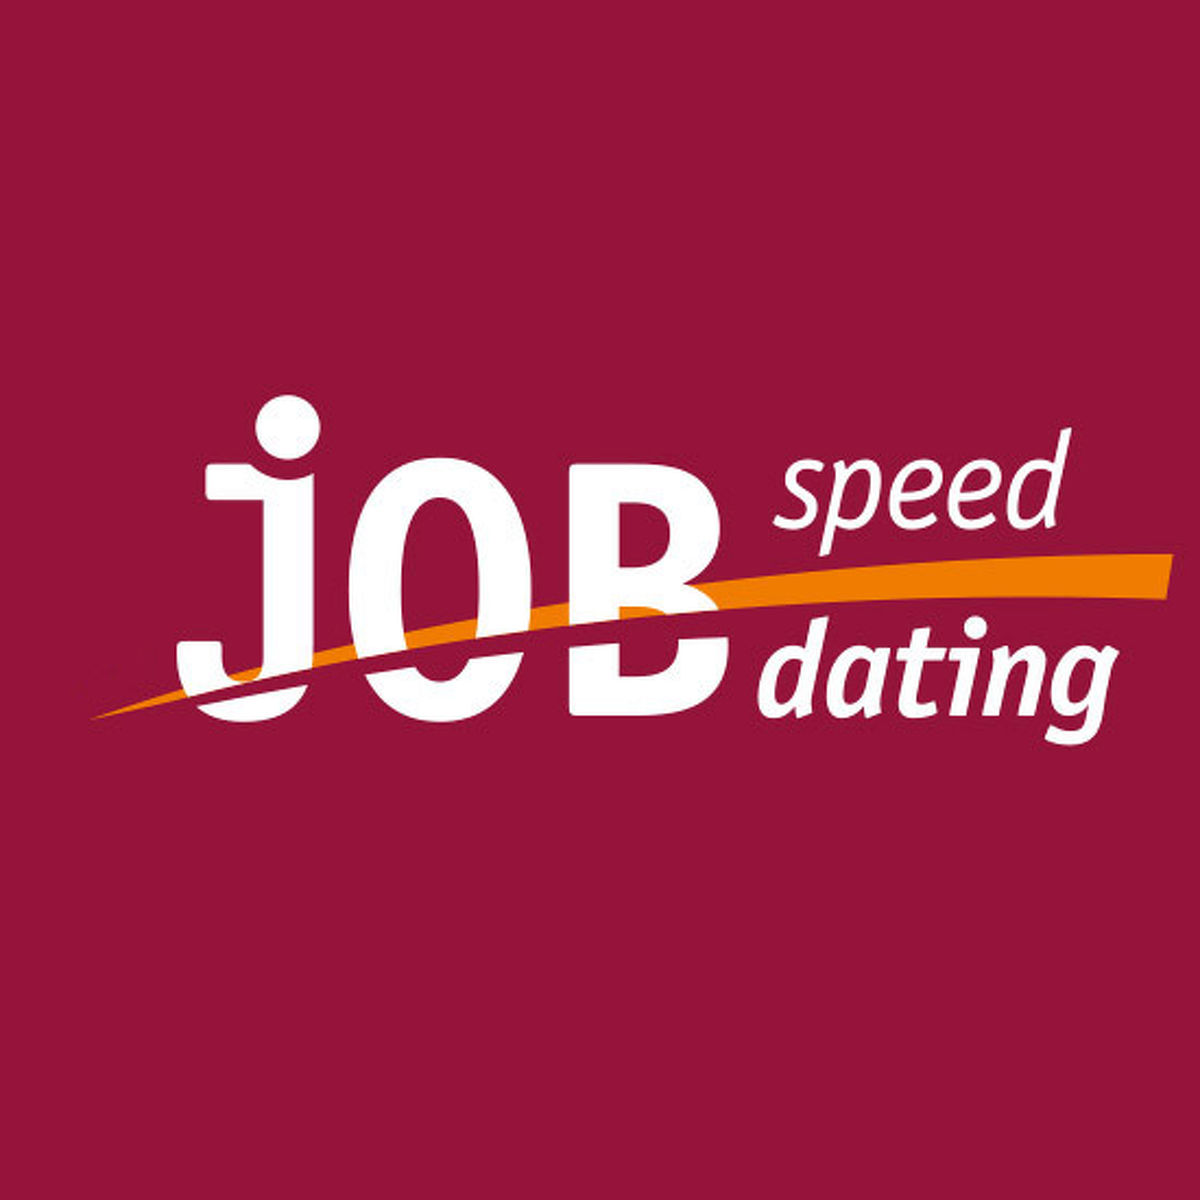 Job-Speed-Dating feiert Jubiläum